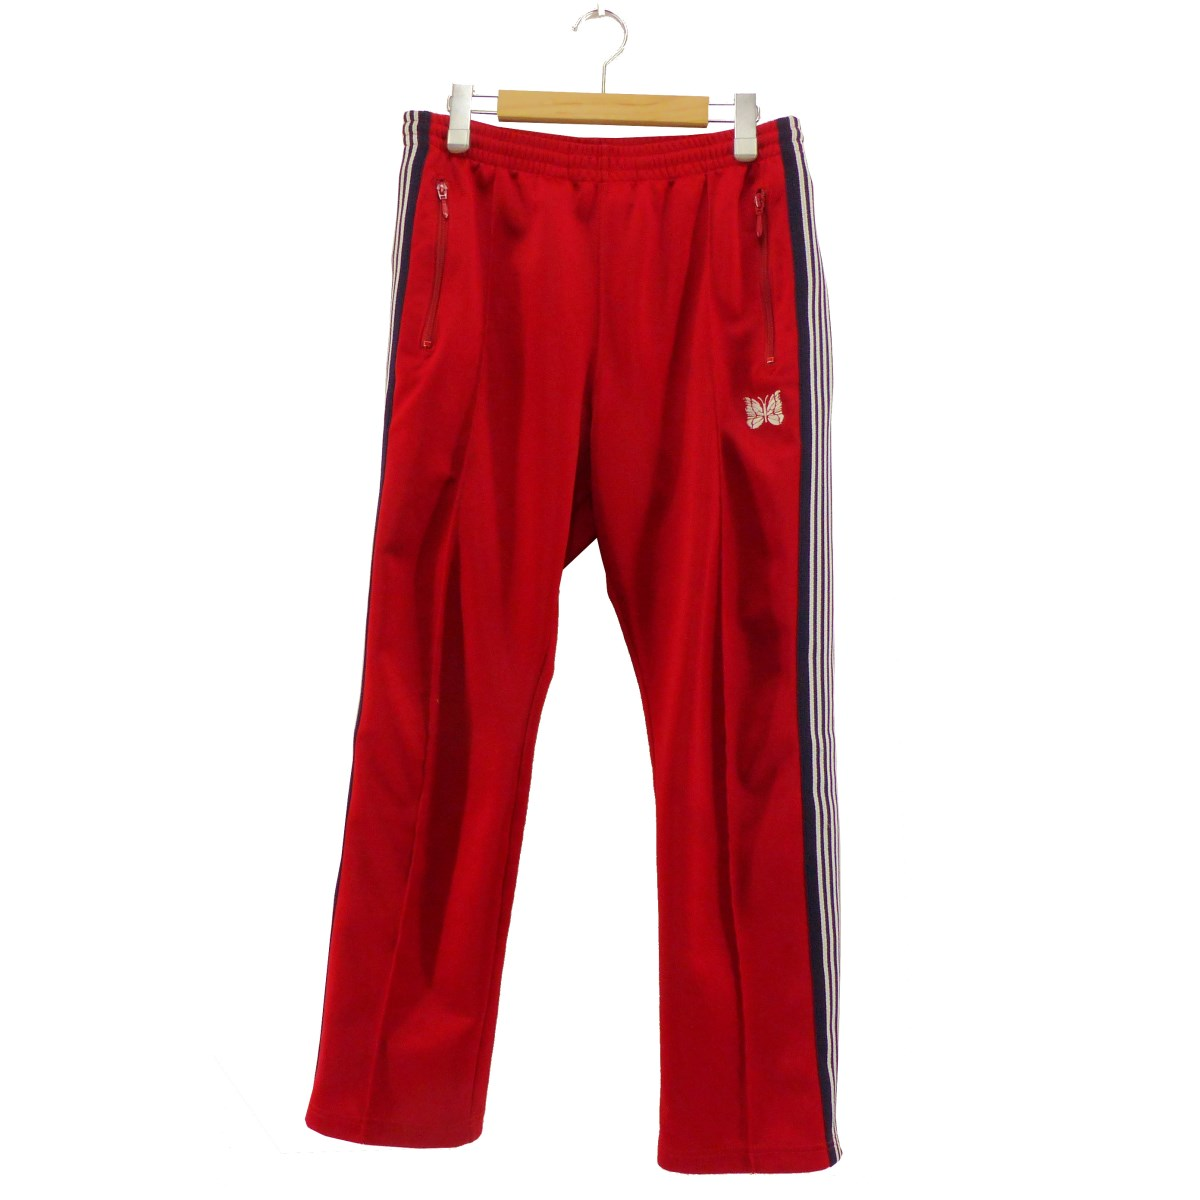 【中古】Needles NARROW TRACK PANT POLY SMOOTH レッド サイズ:S 【010320】(ニードルス)